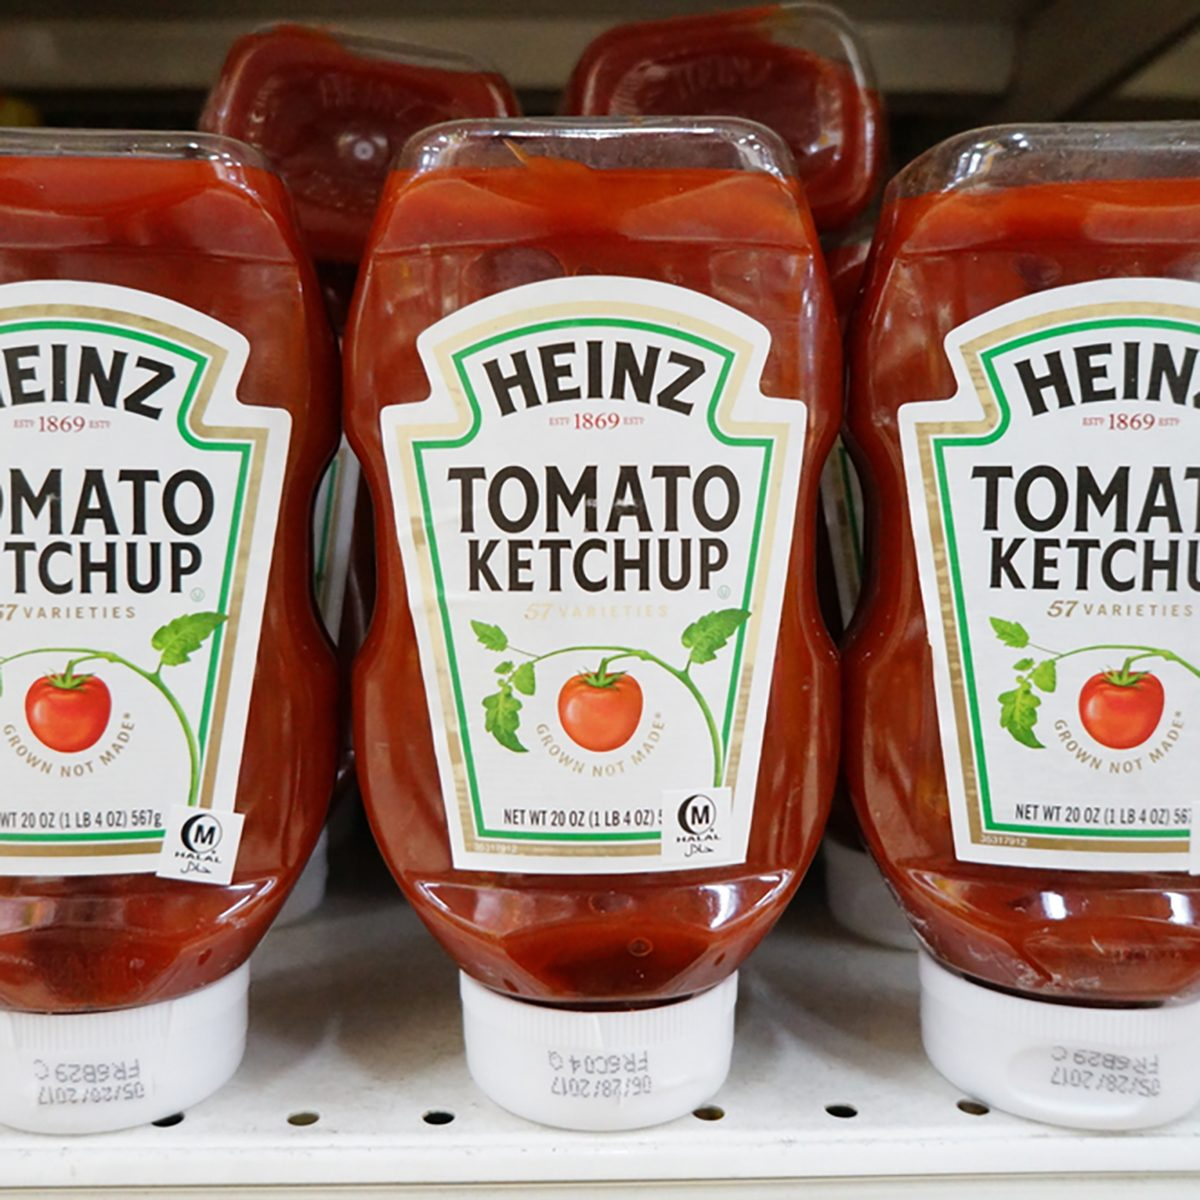 Heinz tomato ketchup at the hypermarket in Putrajaya, Malaysia.